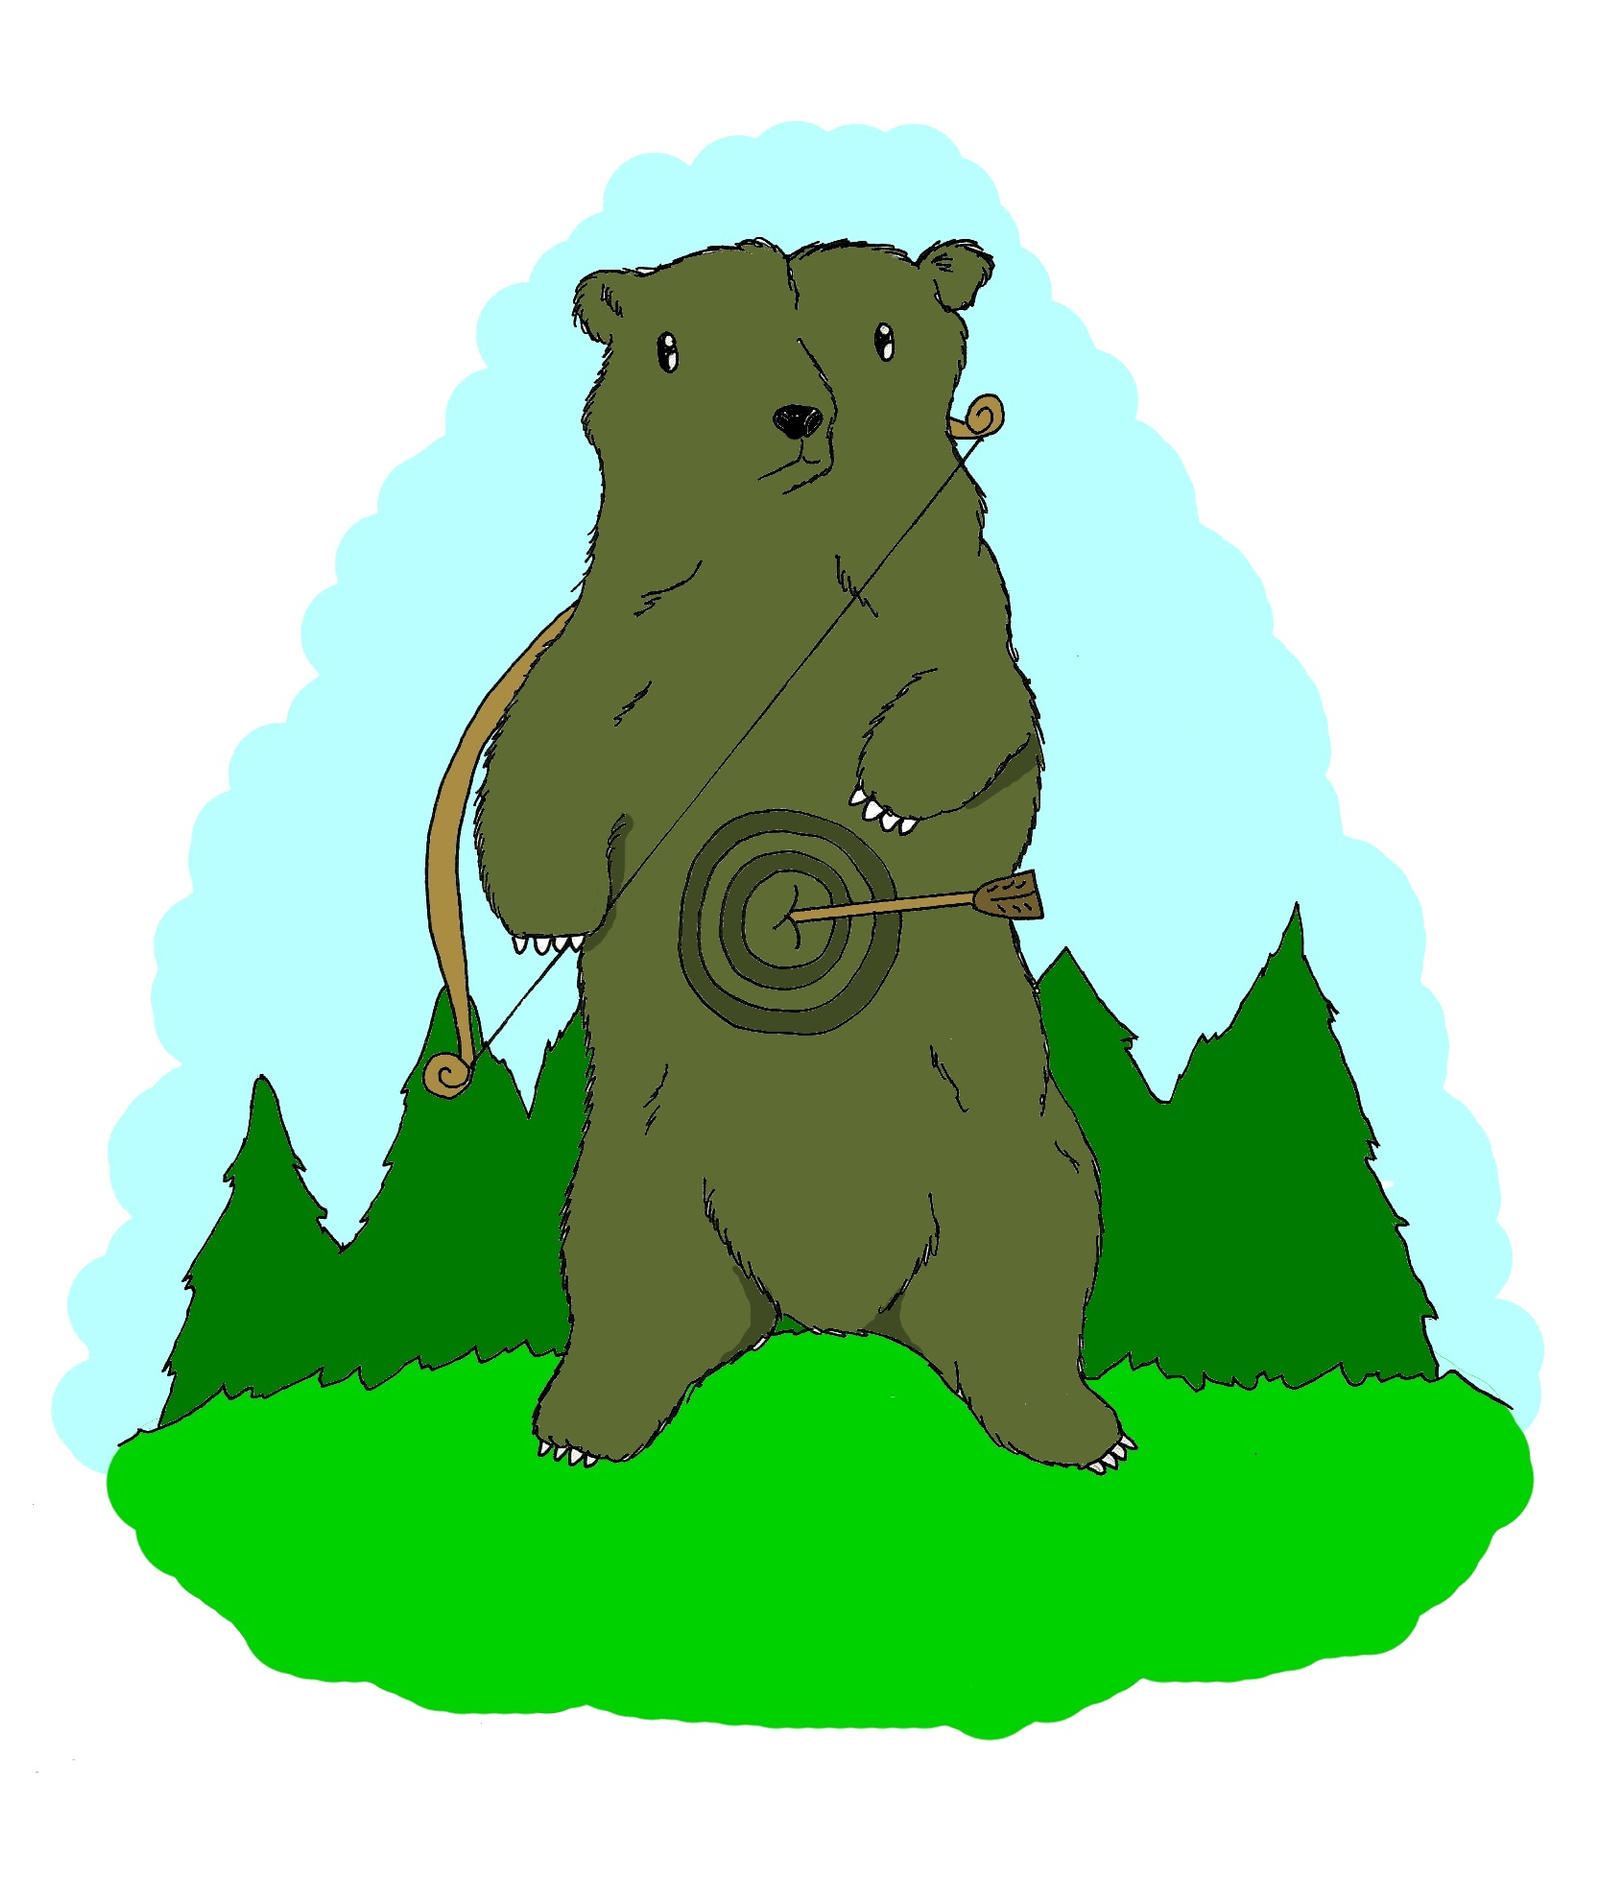 Target bear by hoity toity holiday on deviantart for Belly button bears wall mural